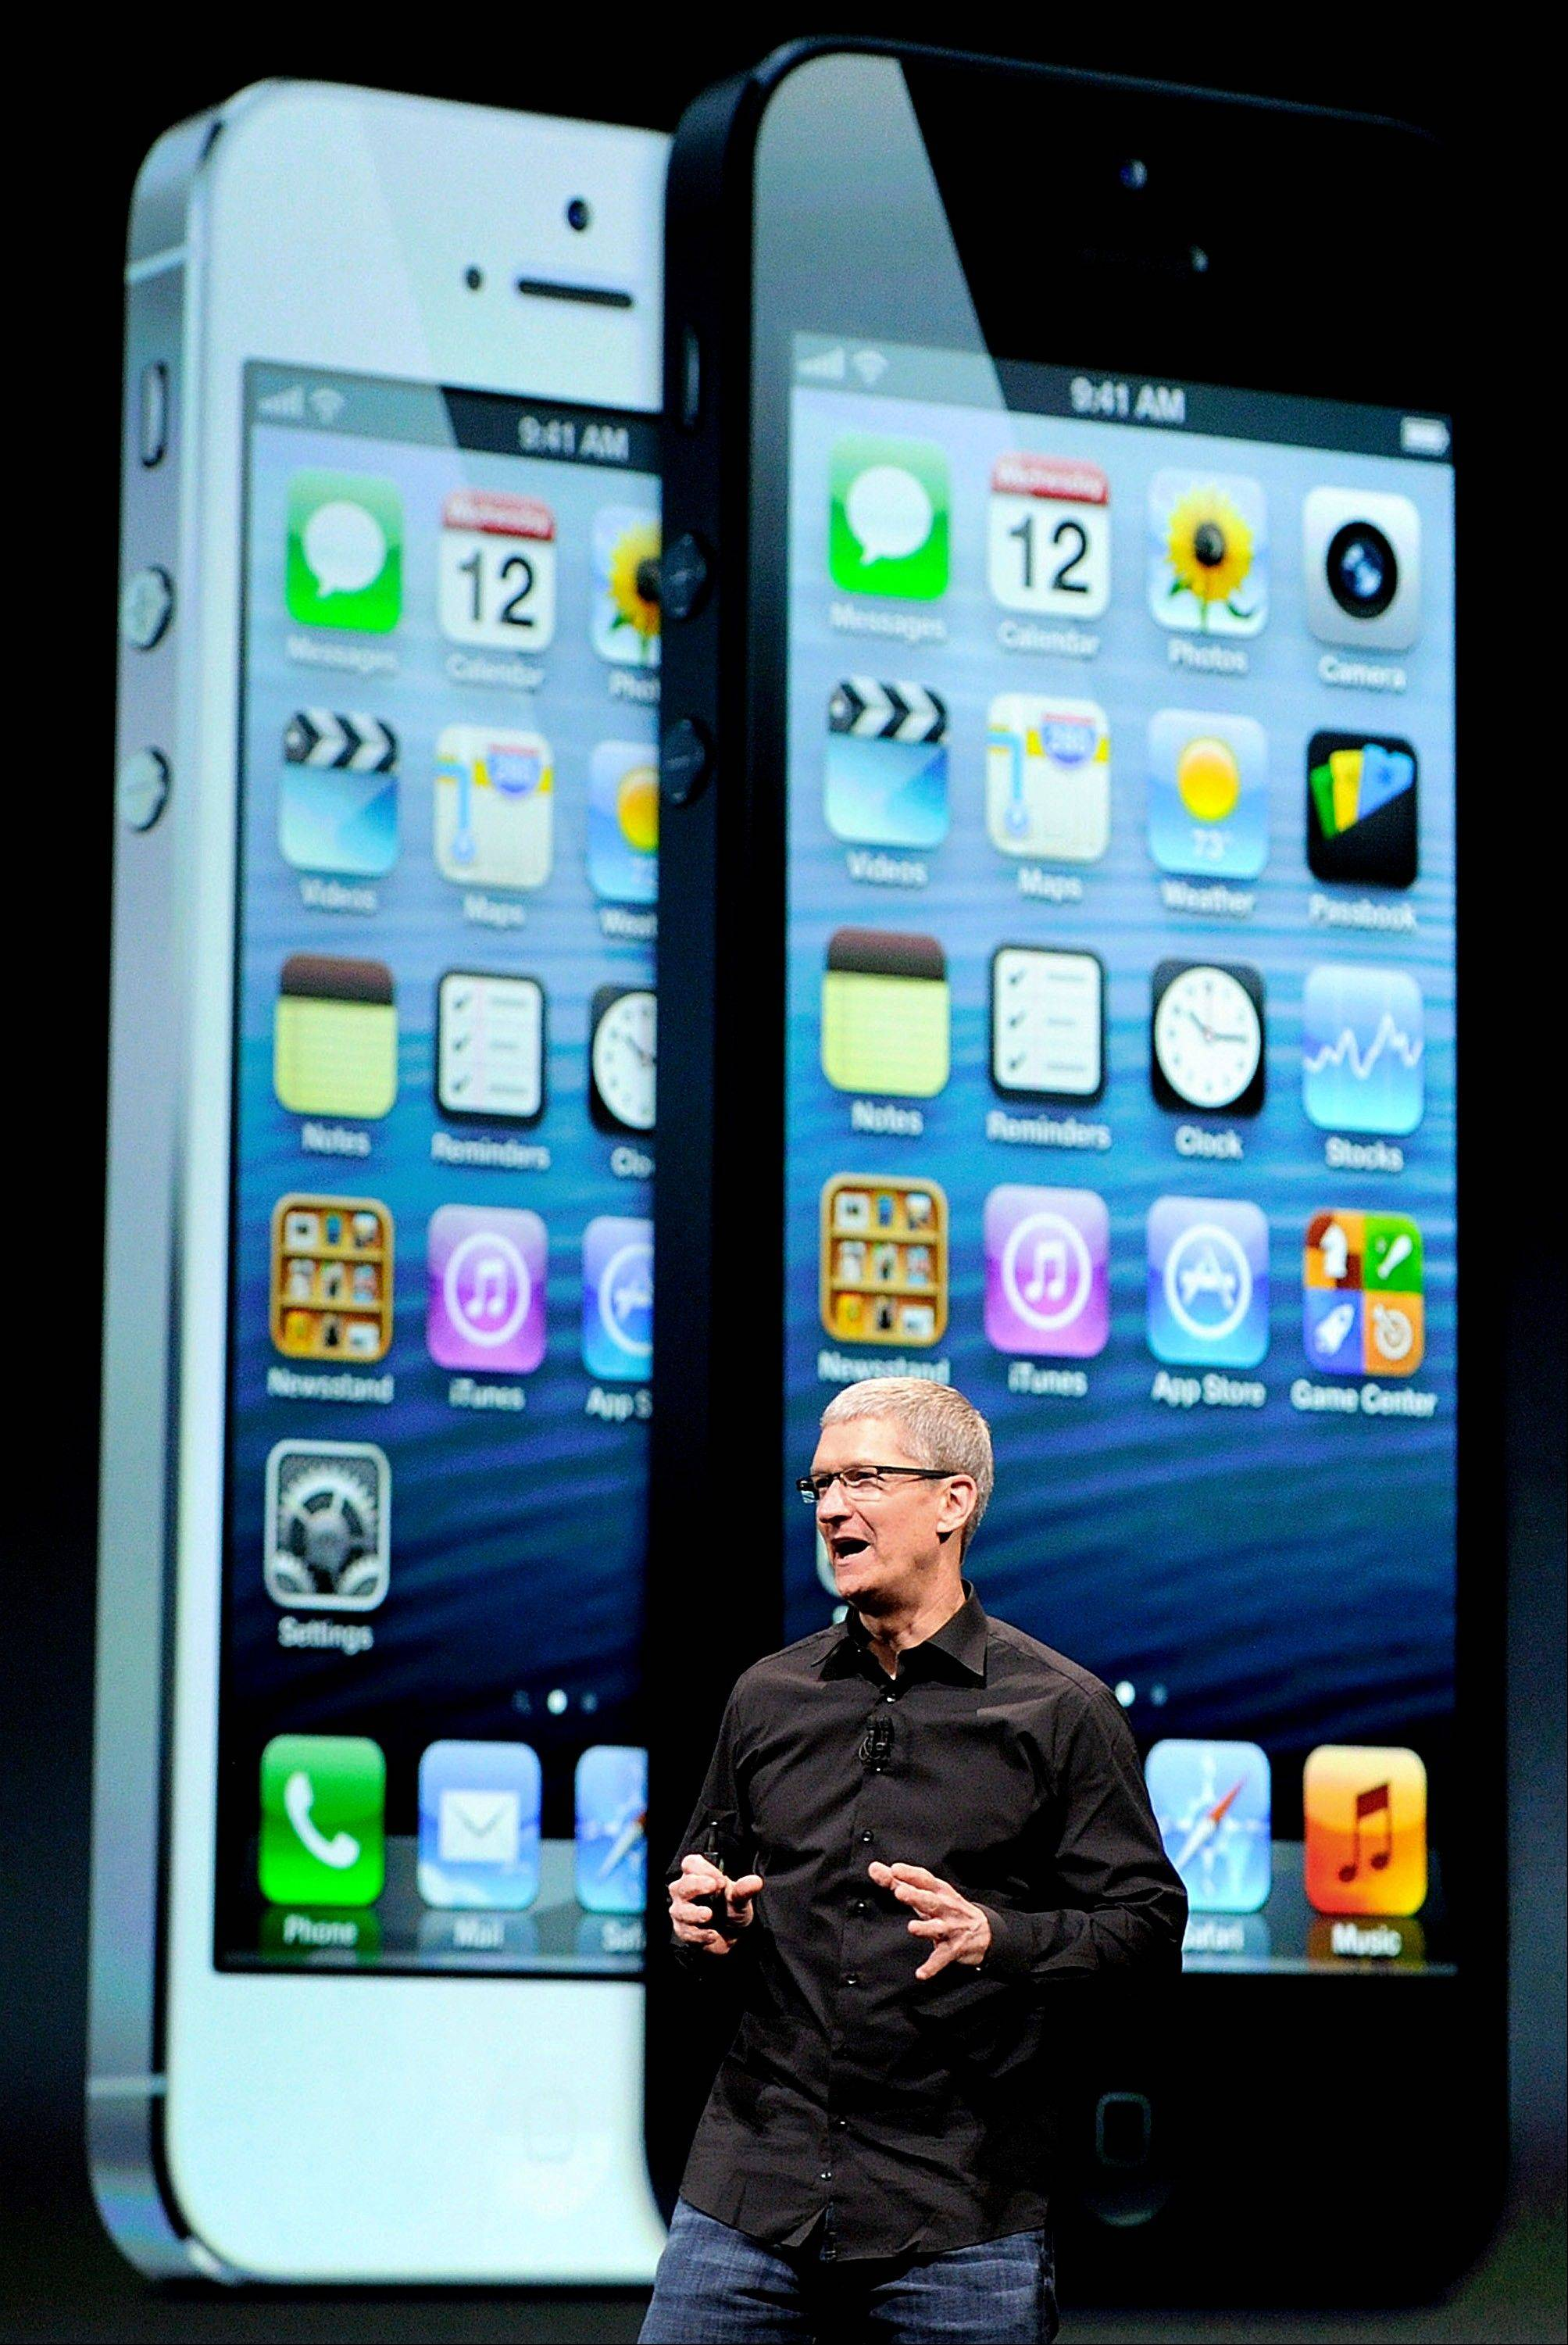 Tim Cook, chief executive officer of Apple Inc., speaks during an event in San Francisco, California, U.S., on Wednesday, Sept. 12, 2012.